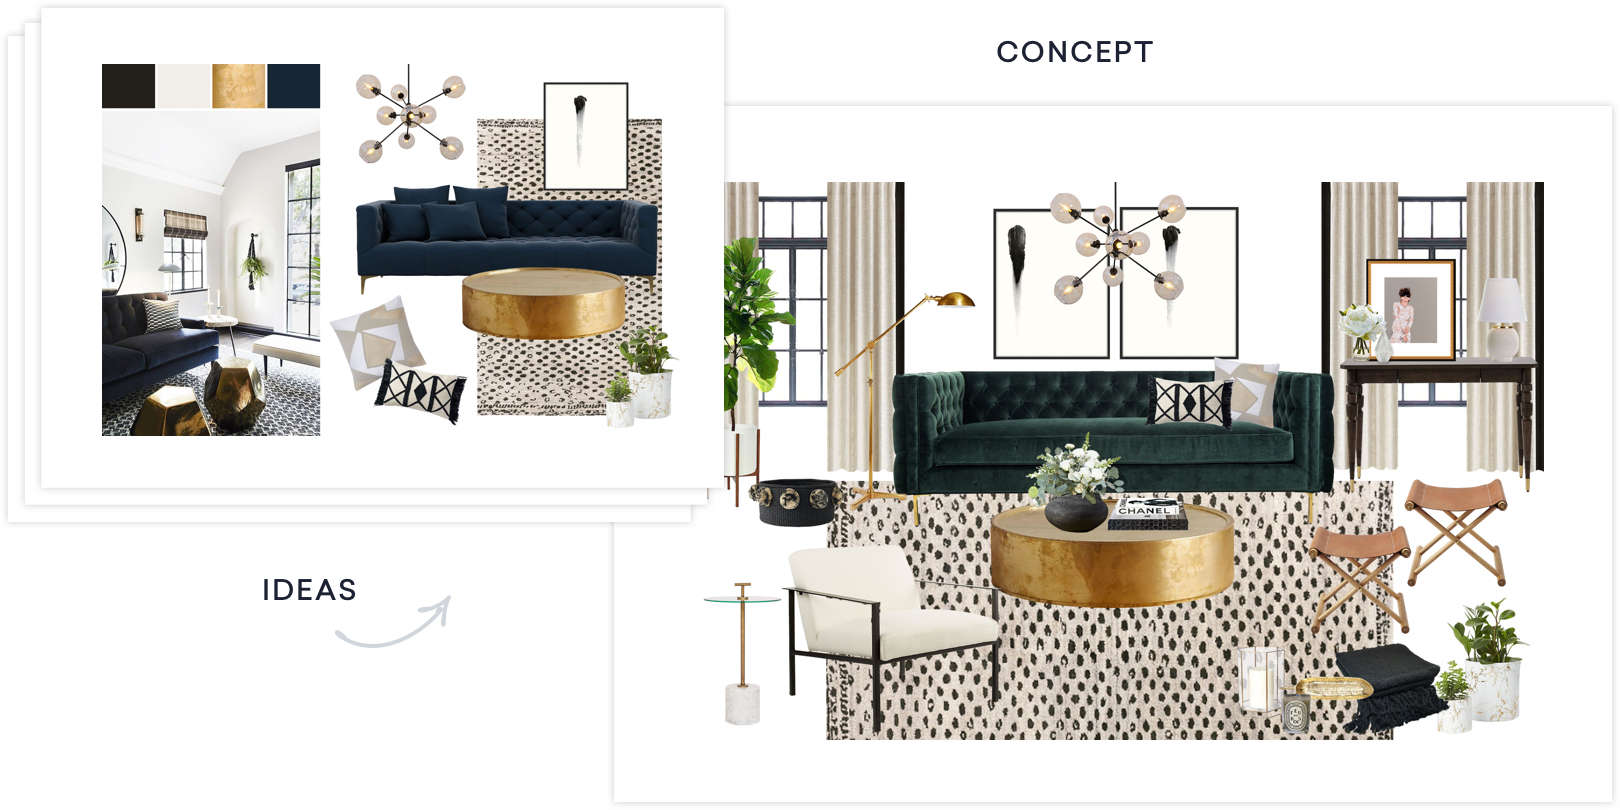 Interior design your house - Sample Idea And Concepts With Personalized Products Picked By An Interior Designer Visualize Your Room